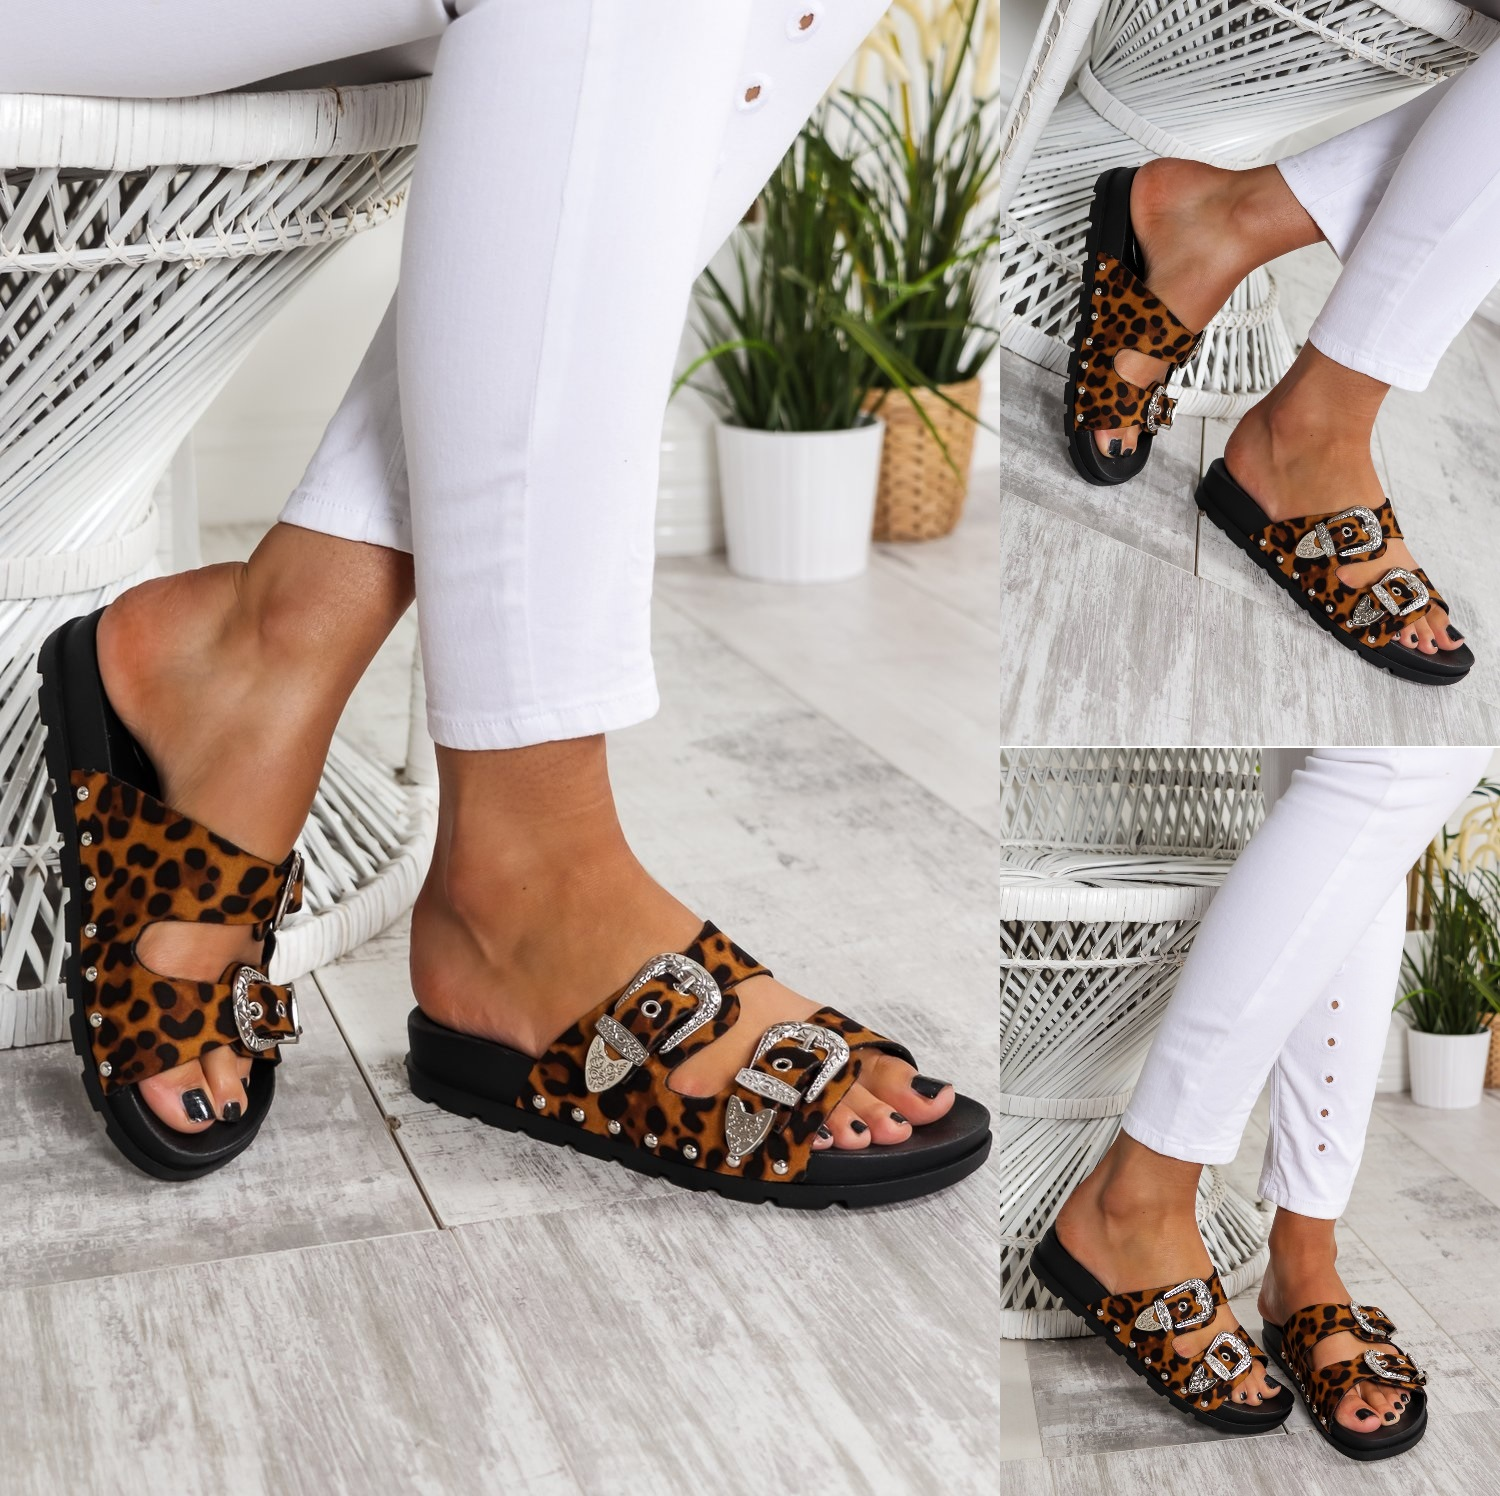 Ladies Womens Studded Buckle Slip On Summer Sliders Mules Sandals Shoes Size